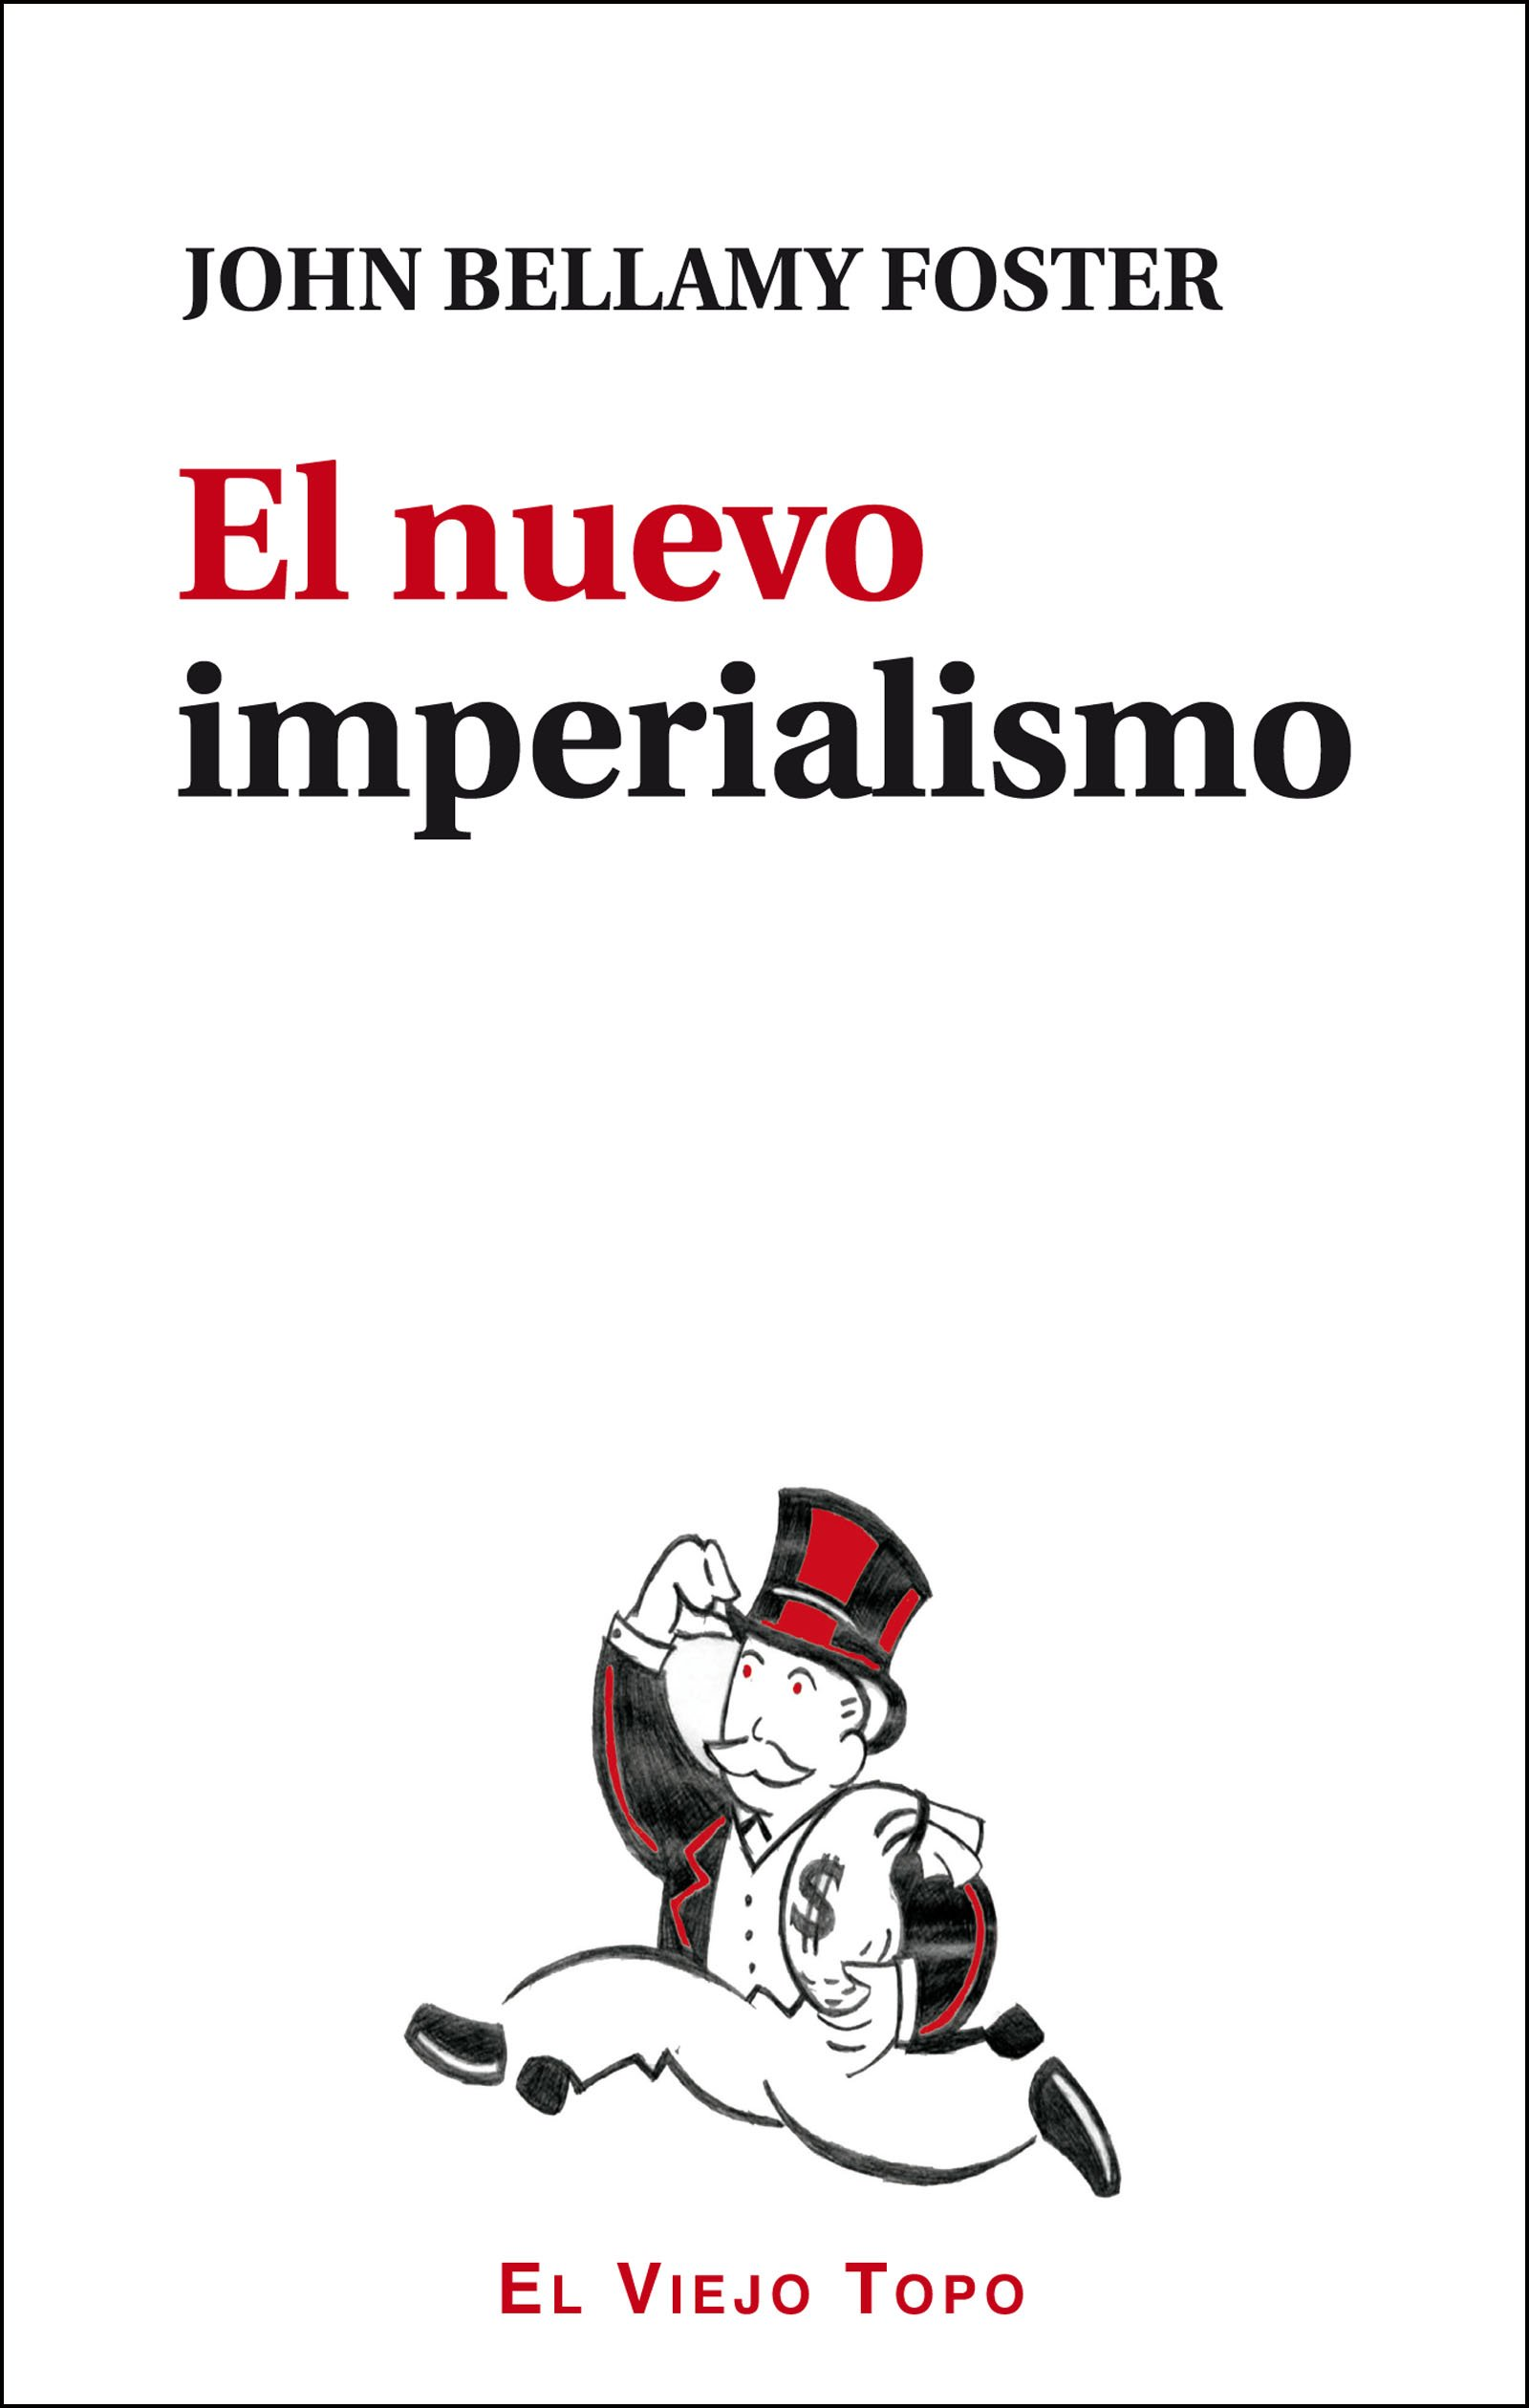 El nuevo imperialismo: Amazon.es: Bellamy Foster, John, Pérez, Esther: Libros